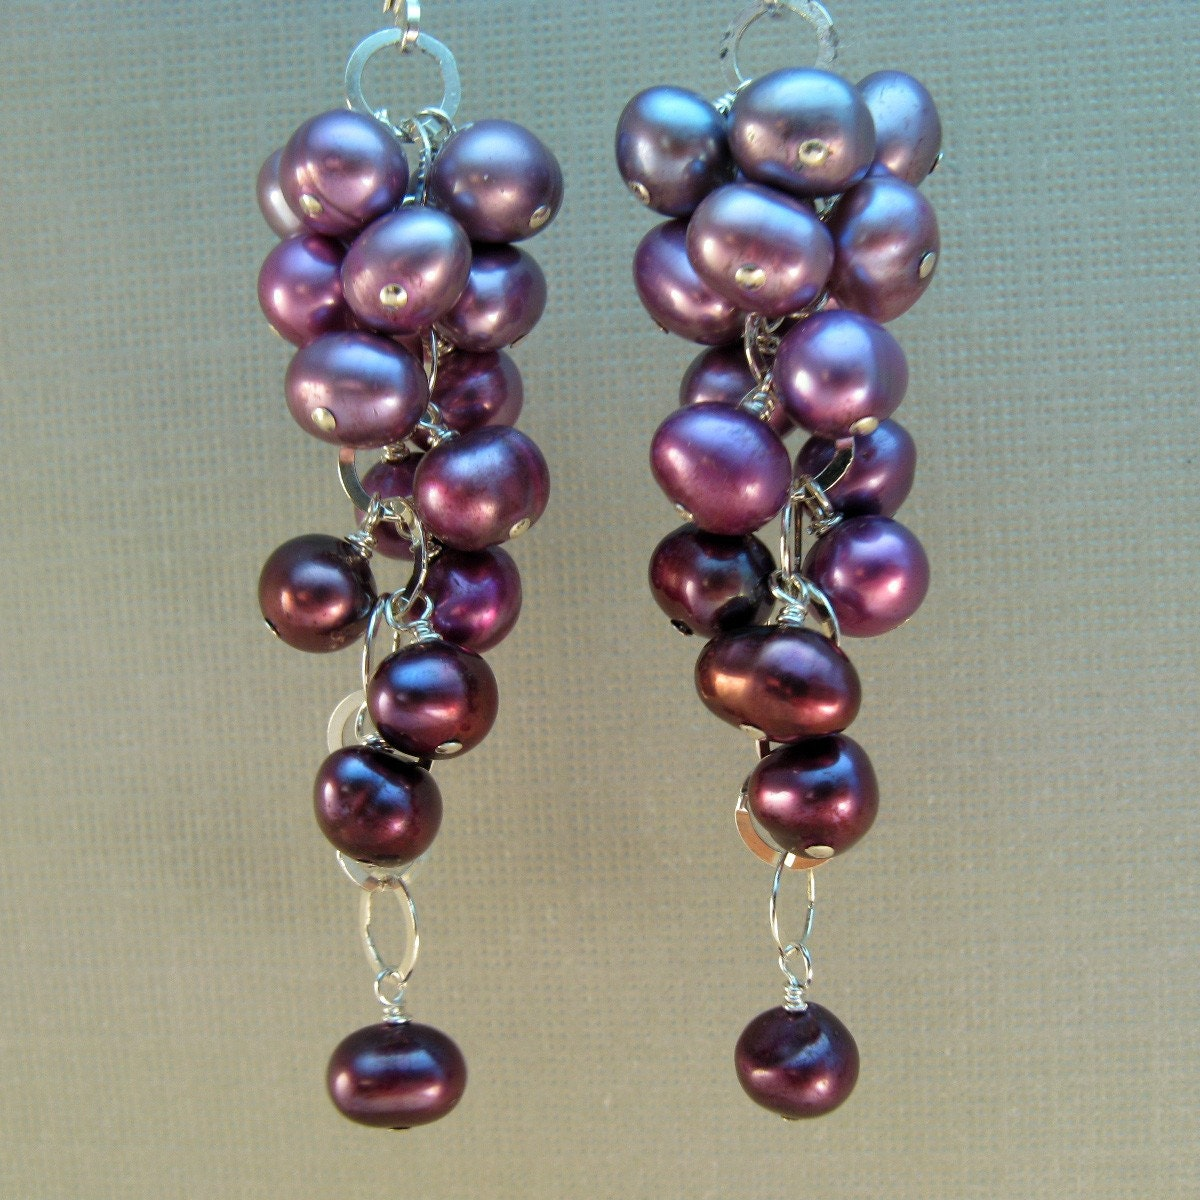 Earrings - Lavender Freshwater Pearls and Sterling Silver, June Birthstone - Napa